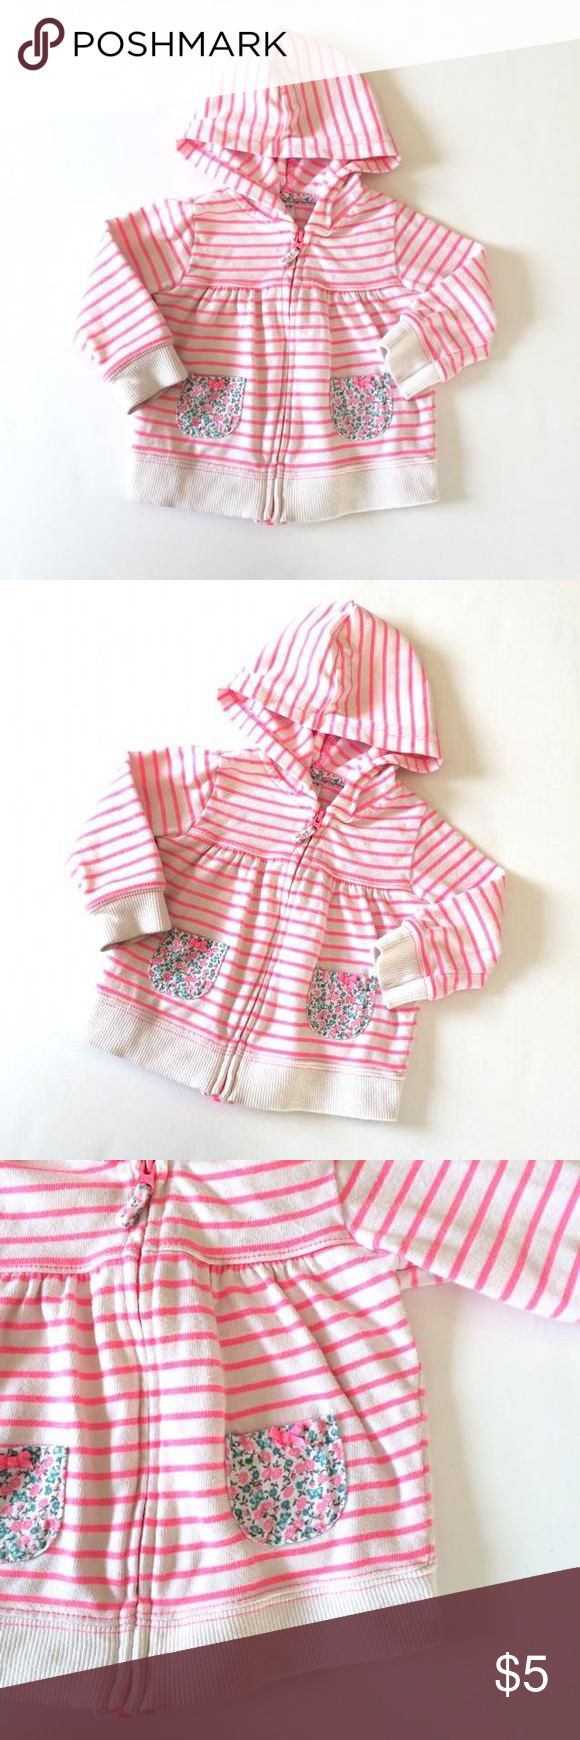 Carters Pink Striped Zip Up Hoodie This pink striped hooded sweatshirt from Carters zips up on the front and has little floral pocket details. Medium weight. Brightly colored and in excellent condition! *109, bin 2* Carters Shirts & Tops Sweatshirts & Hoodies